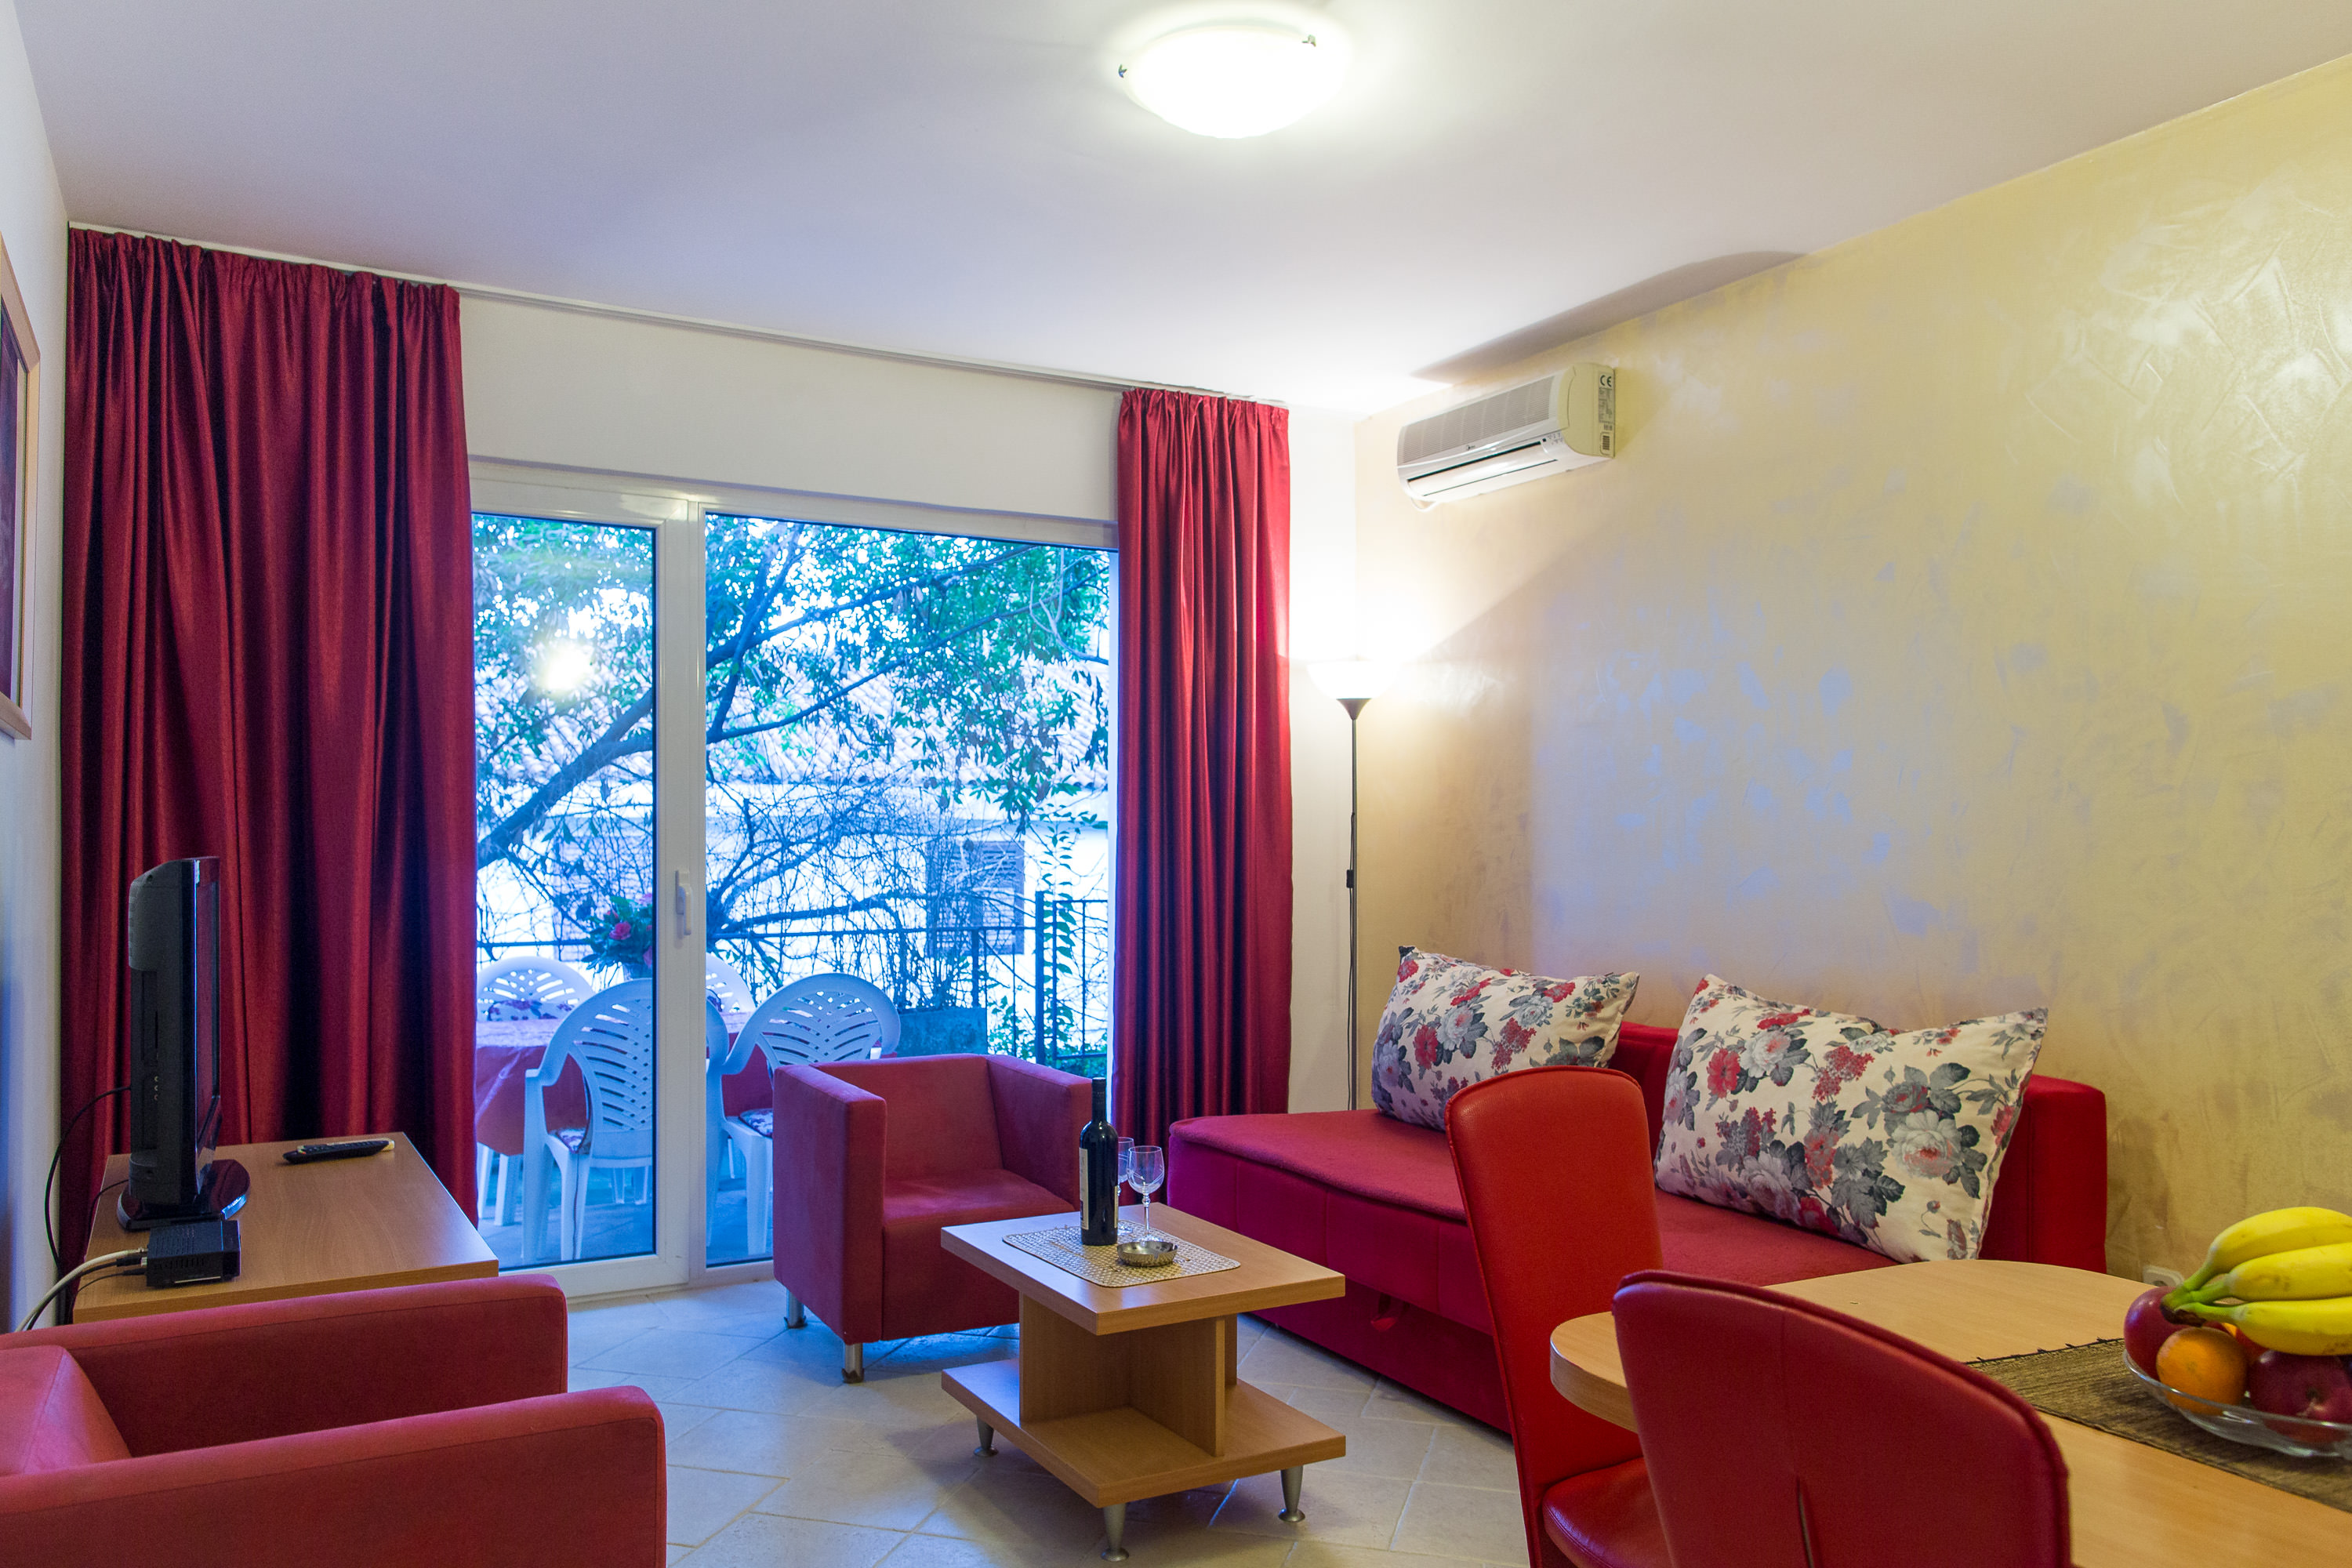 Apartment Lukas w/1 bedroom and balcony #2